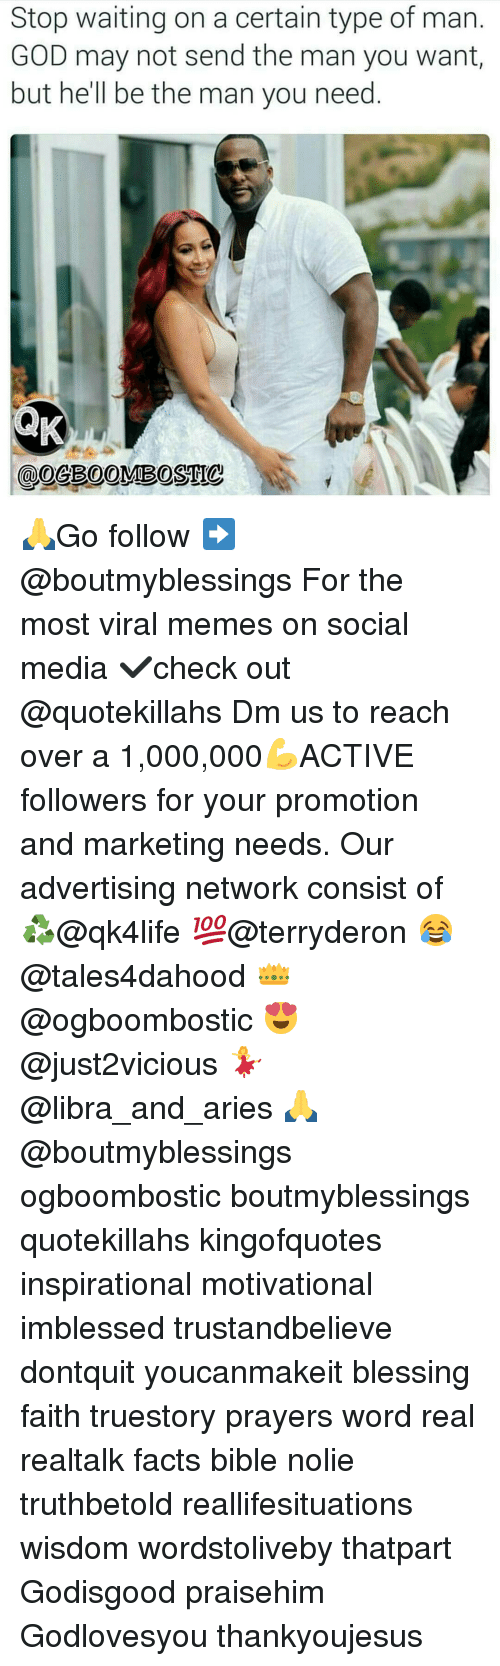 Advertise Network: Stop waiting on a certain type of man.  GOD may not send the man you want,  but he'll be the man you need 🙏Go follow ➡@boutmyblessings For the most viral memes on social media ✔check out @quotekillahs Dm us to reach over a 1,000,000💪ACTIVE followers for your promotion and marketing needs. Our advertising network consist of ♻@qk4life 💯@terryderon 😂@tales4dahood 👑@ogboombostic 😍@just2vicious 💃@libra_and_aries 🙏@boutmyblessings ogboombostic boutmyblessings quotekillahs kingofquotes inspirational motivational imblessed trustandbelieve dontquit youcanmakeit blessing faith truestory prayers word real realtalk facts bible nolie truthbetold reallifesituations wisdom wordstoliveby thatpart Godisgood praisehim Godlovesyou thankyoujesus